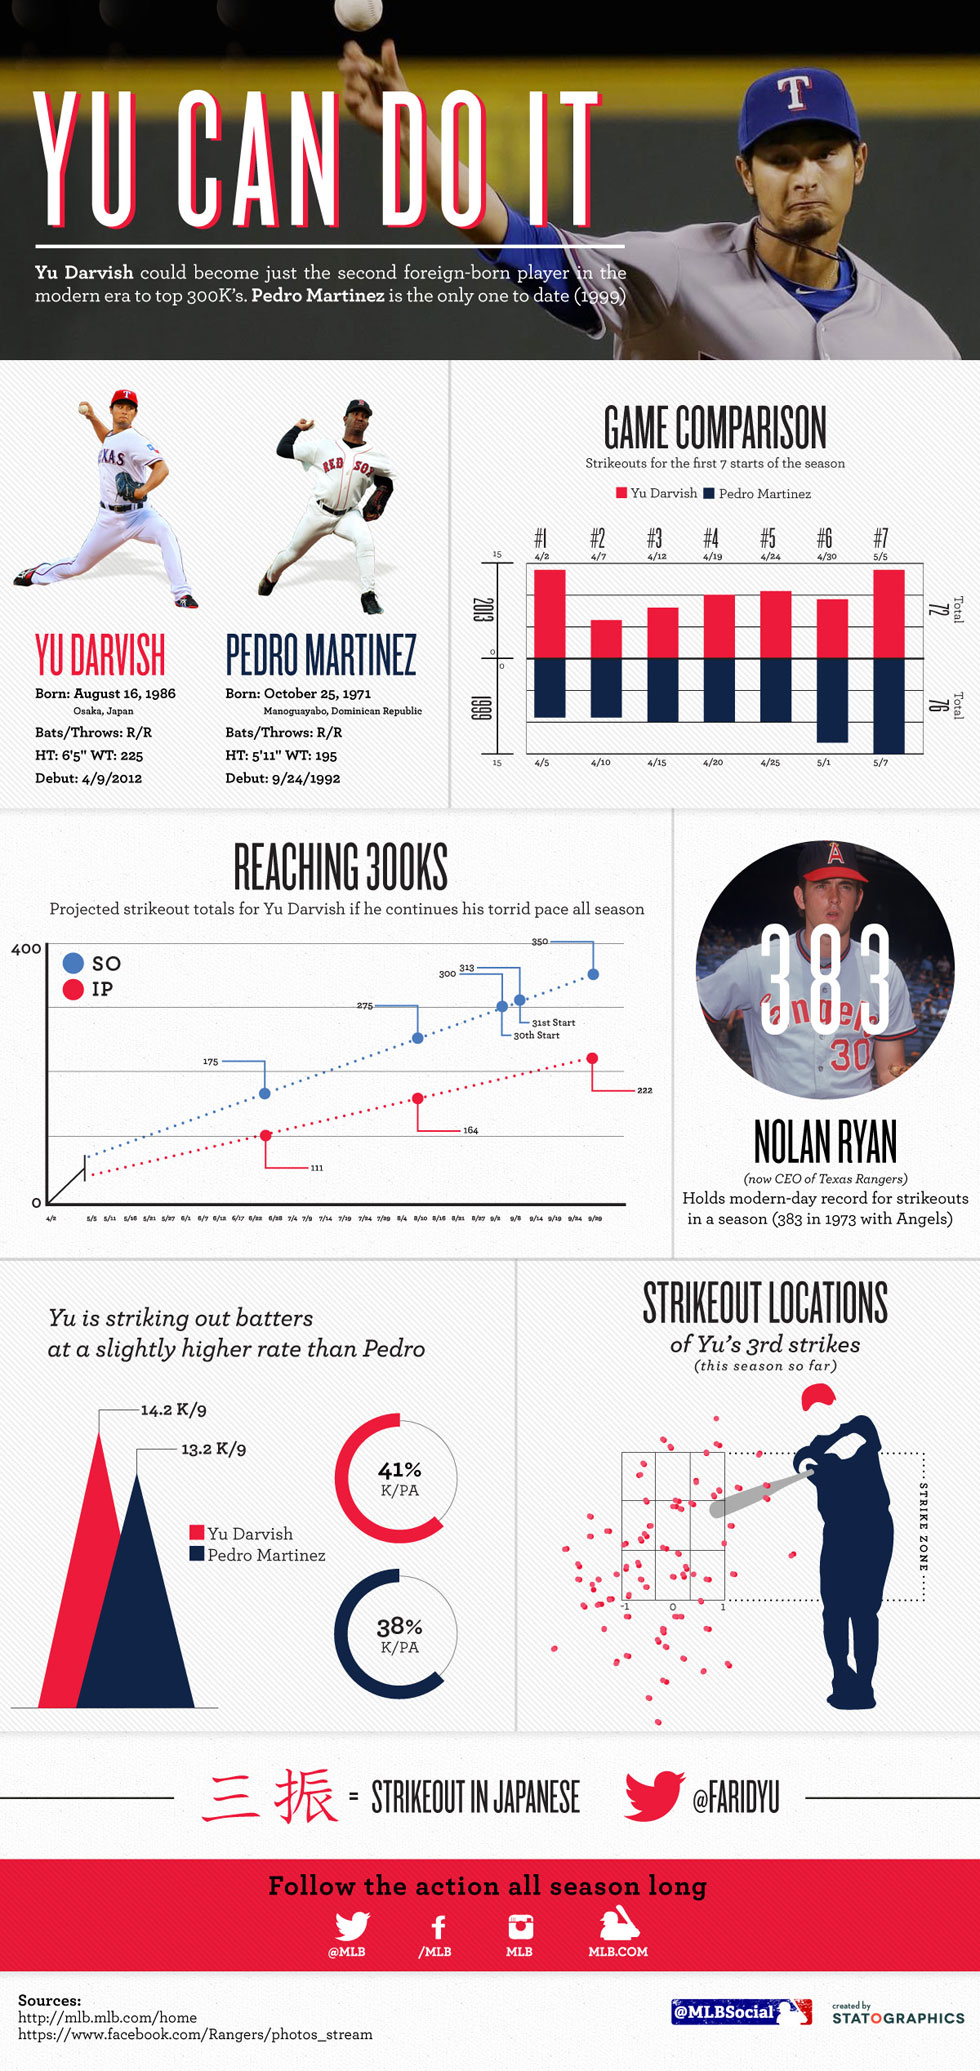 Yu Can Do It - #MLB infographic